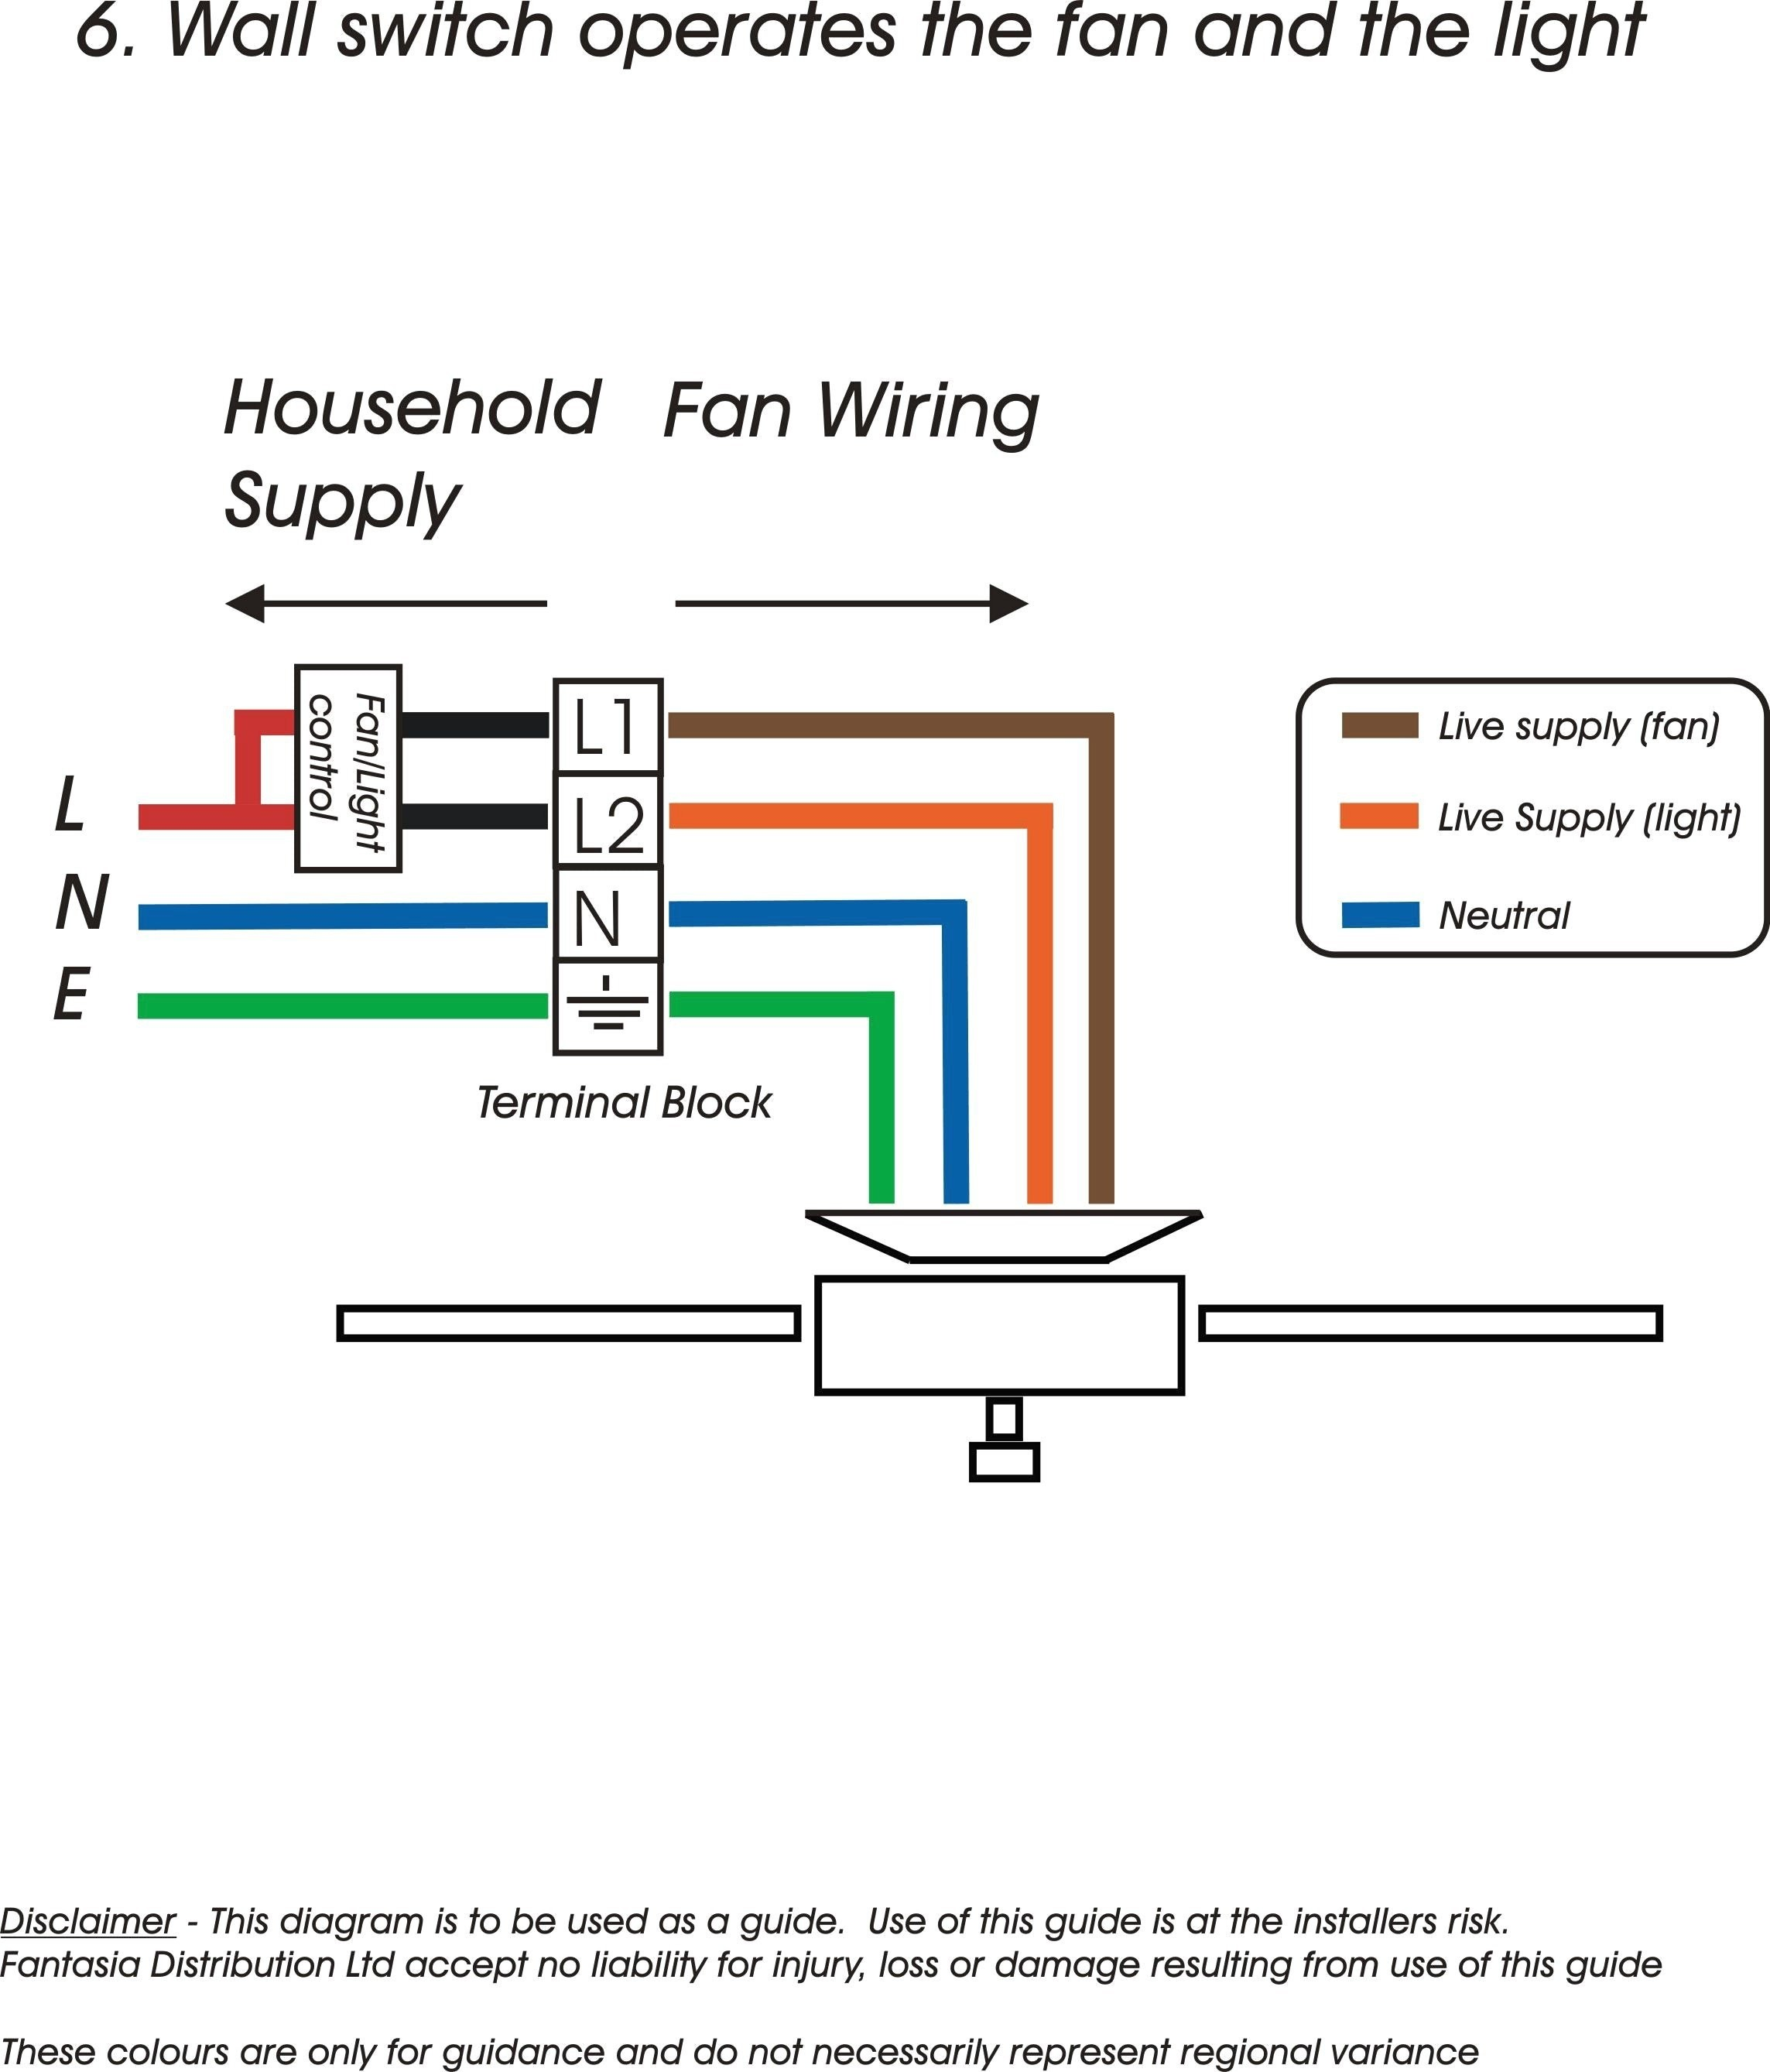 Zimmatic Pivot Wiring Diagram New | Wiring Diagram Image on